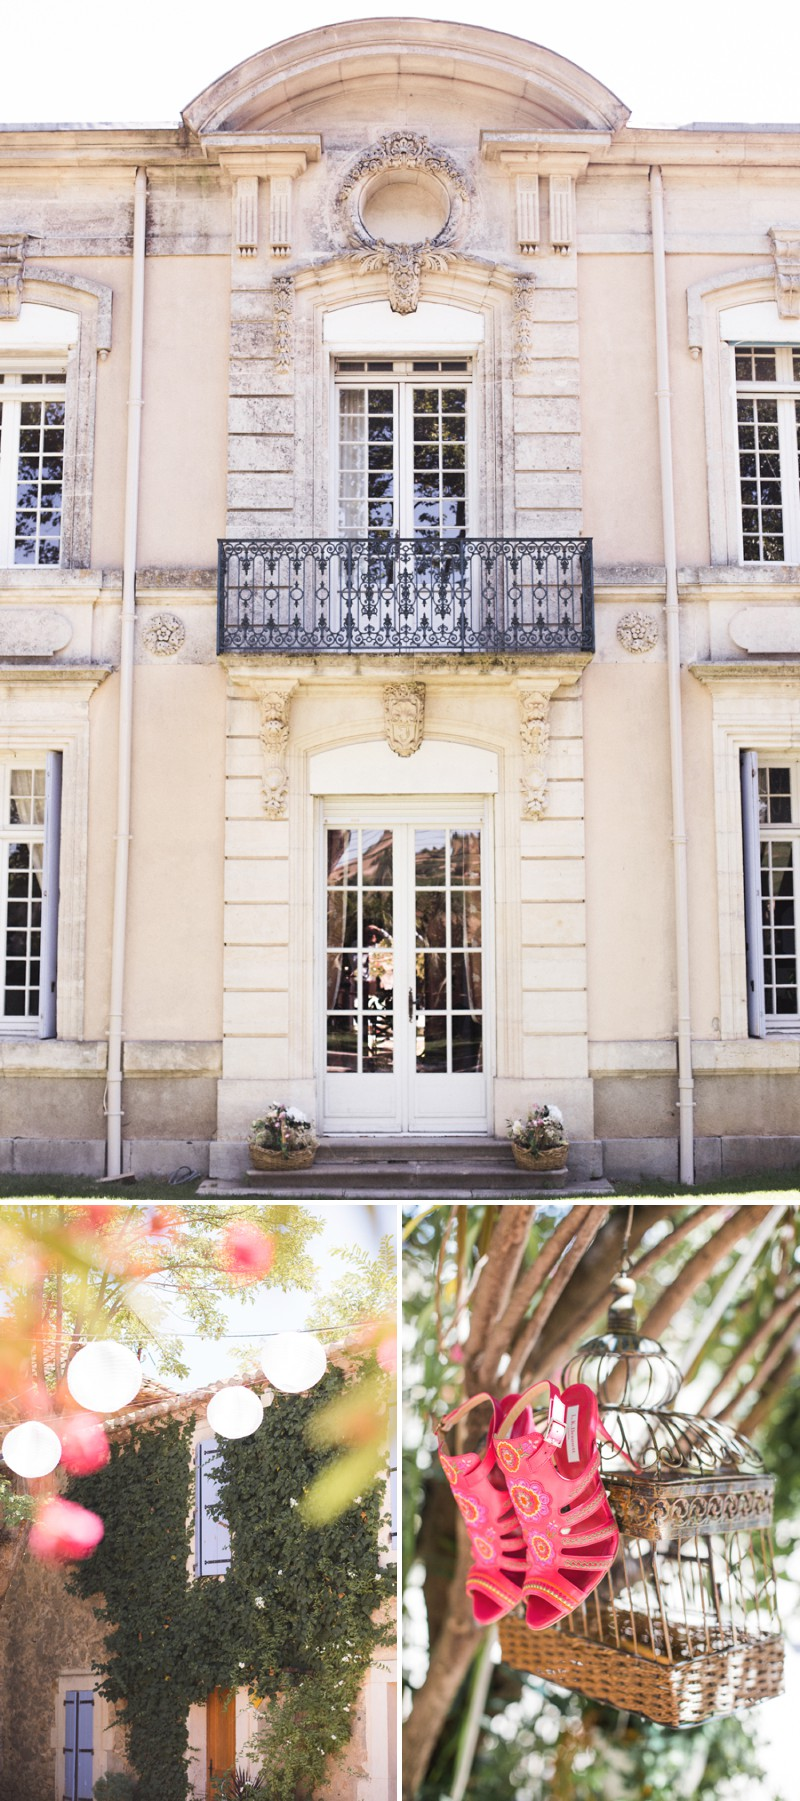 A Beautiful Destination Wedding at Chateau du Puits es Pratx in France With A Handmade Bohemian Wedding Dress And White Colour Scheme By MJ Photography. 0001 Champagne Love At The Château.